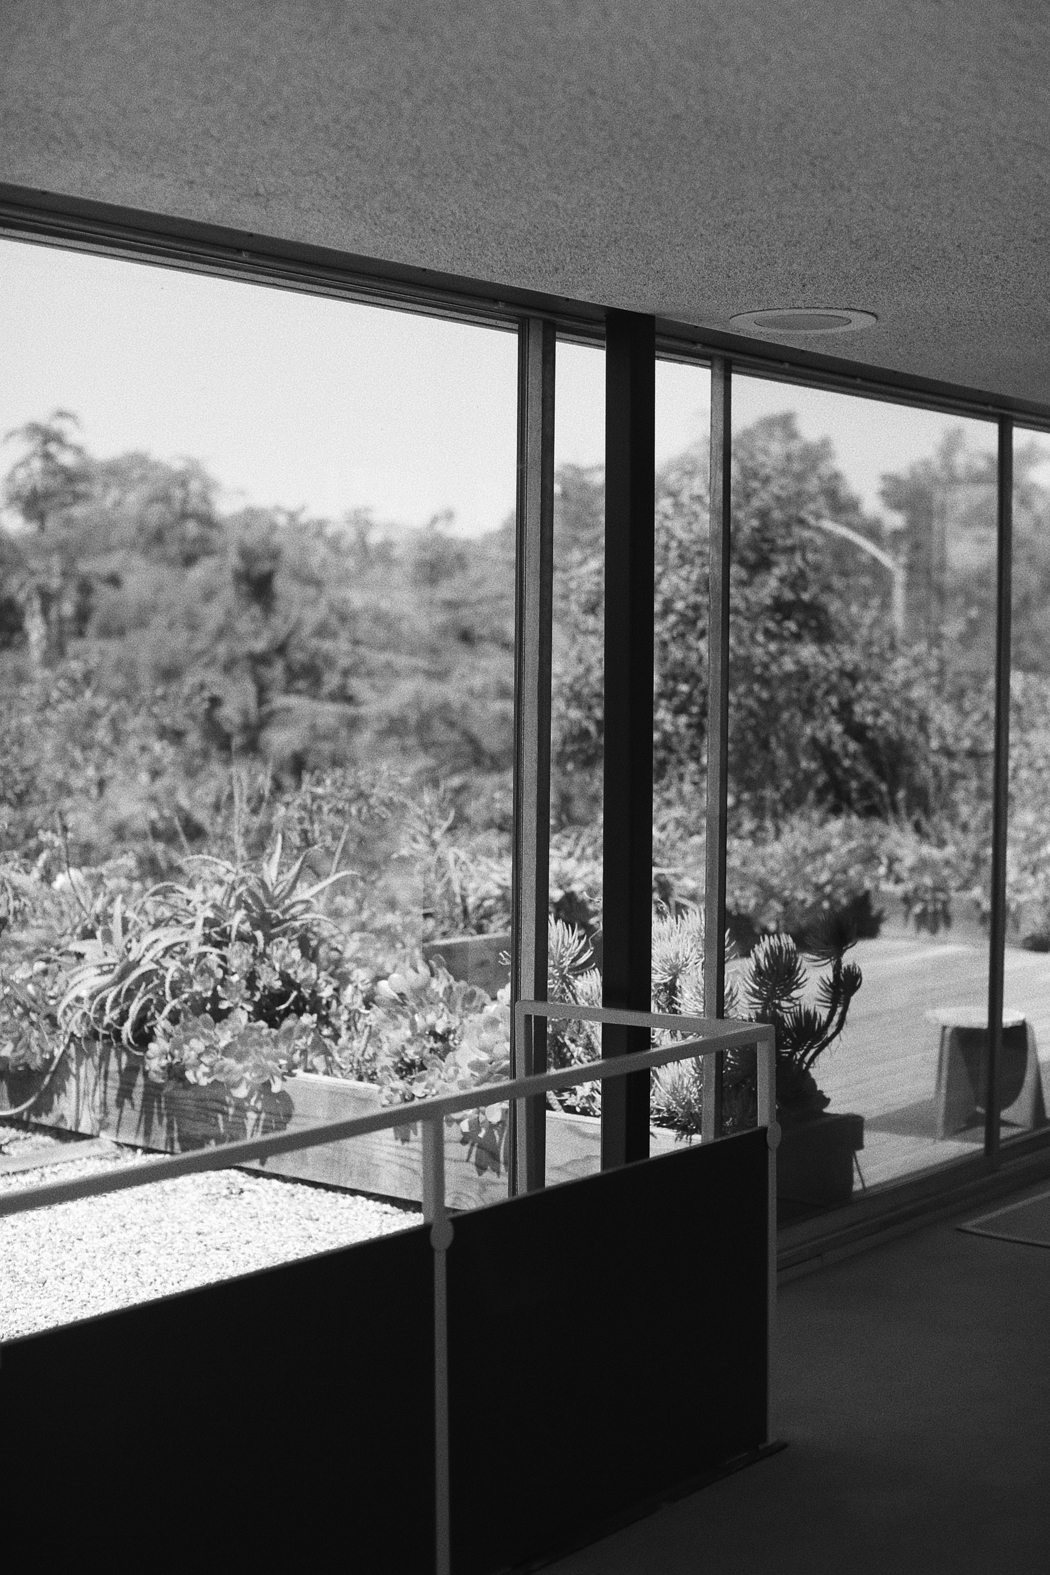 The Dashing Rider - Richard Neutra VDL House Silver Lake